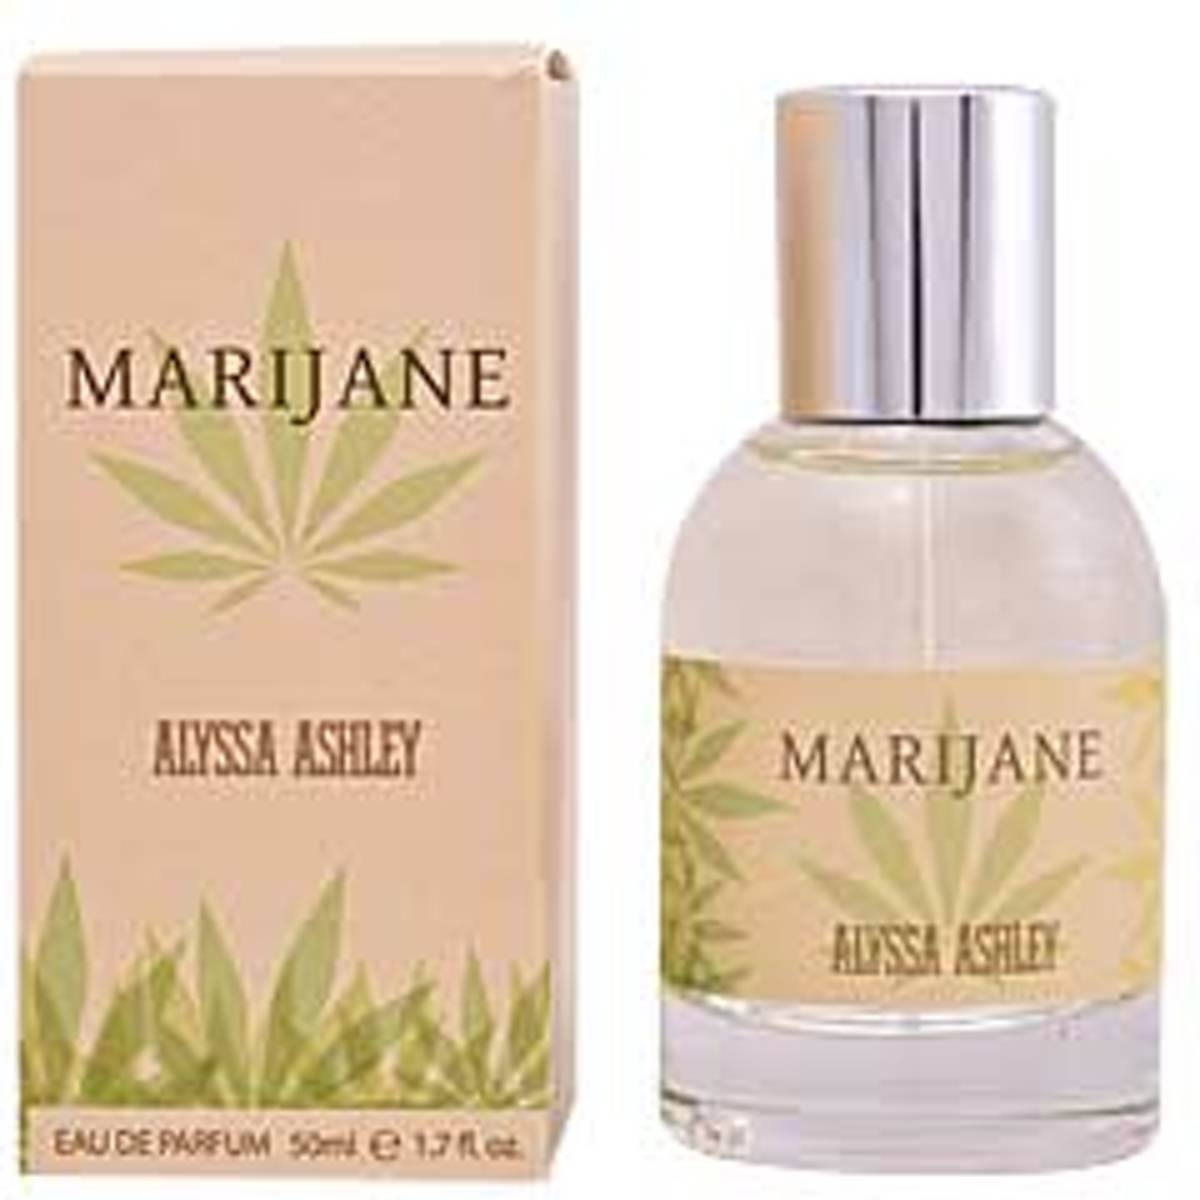 Alyssa Ashley MARIJANE edp spray 50 ml